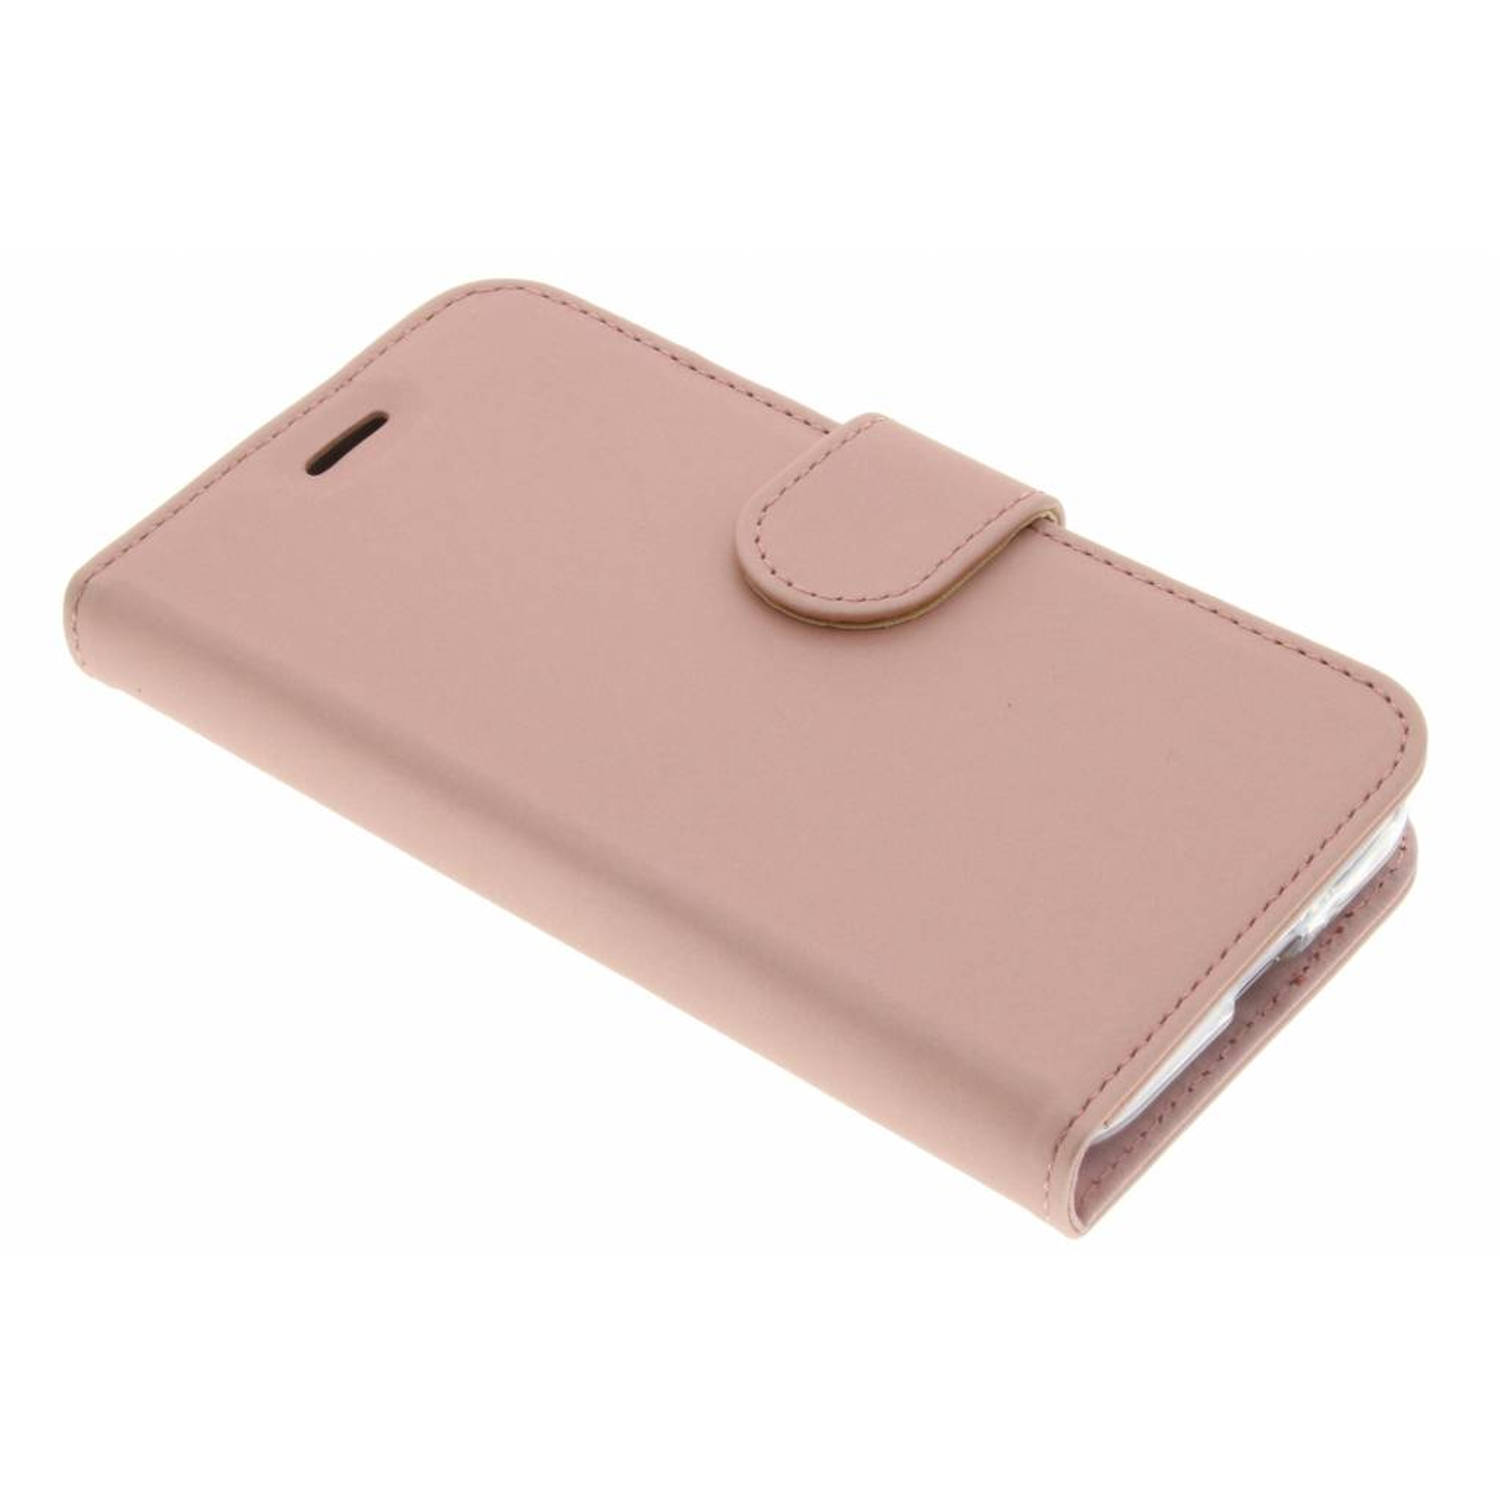 Wallet tpu booklet voor de samsung galaxy j1 (2016) - rose gold